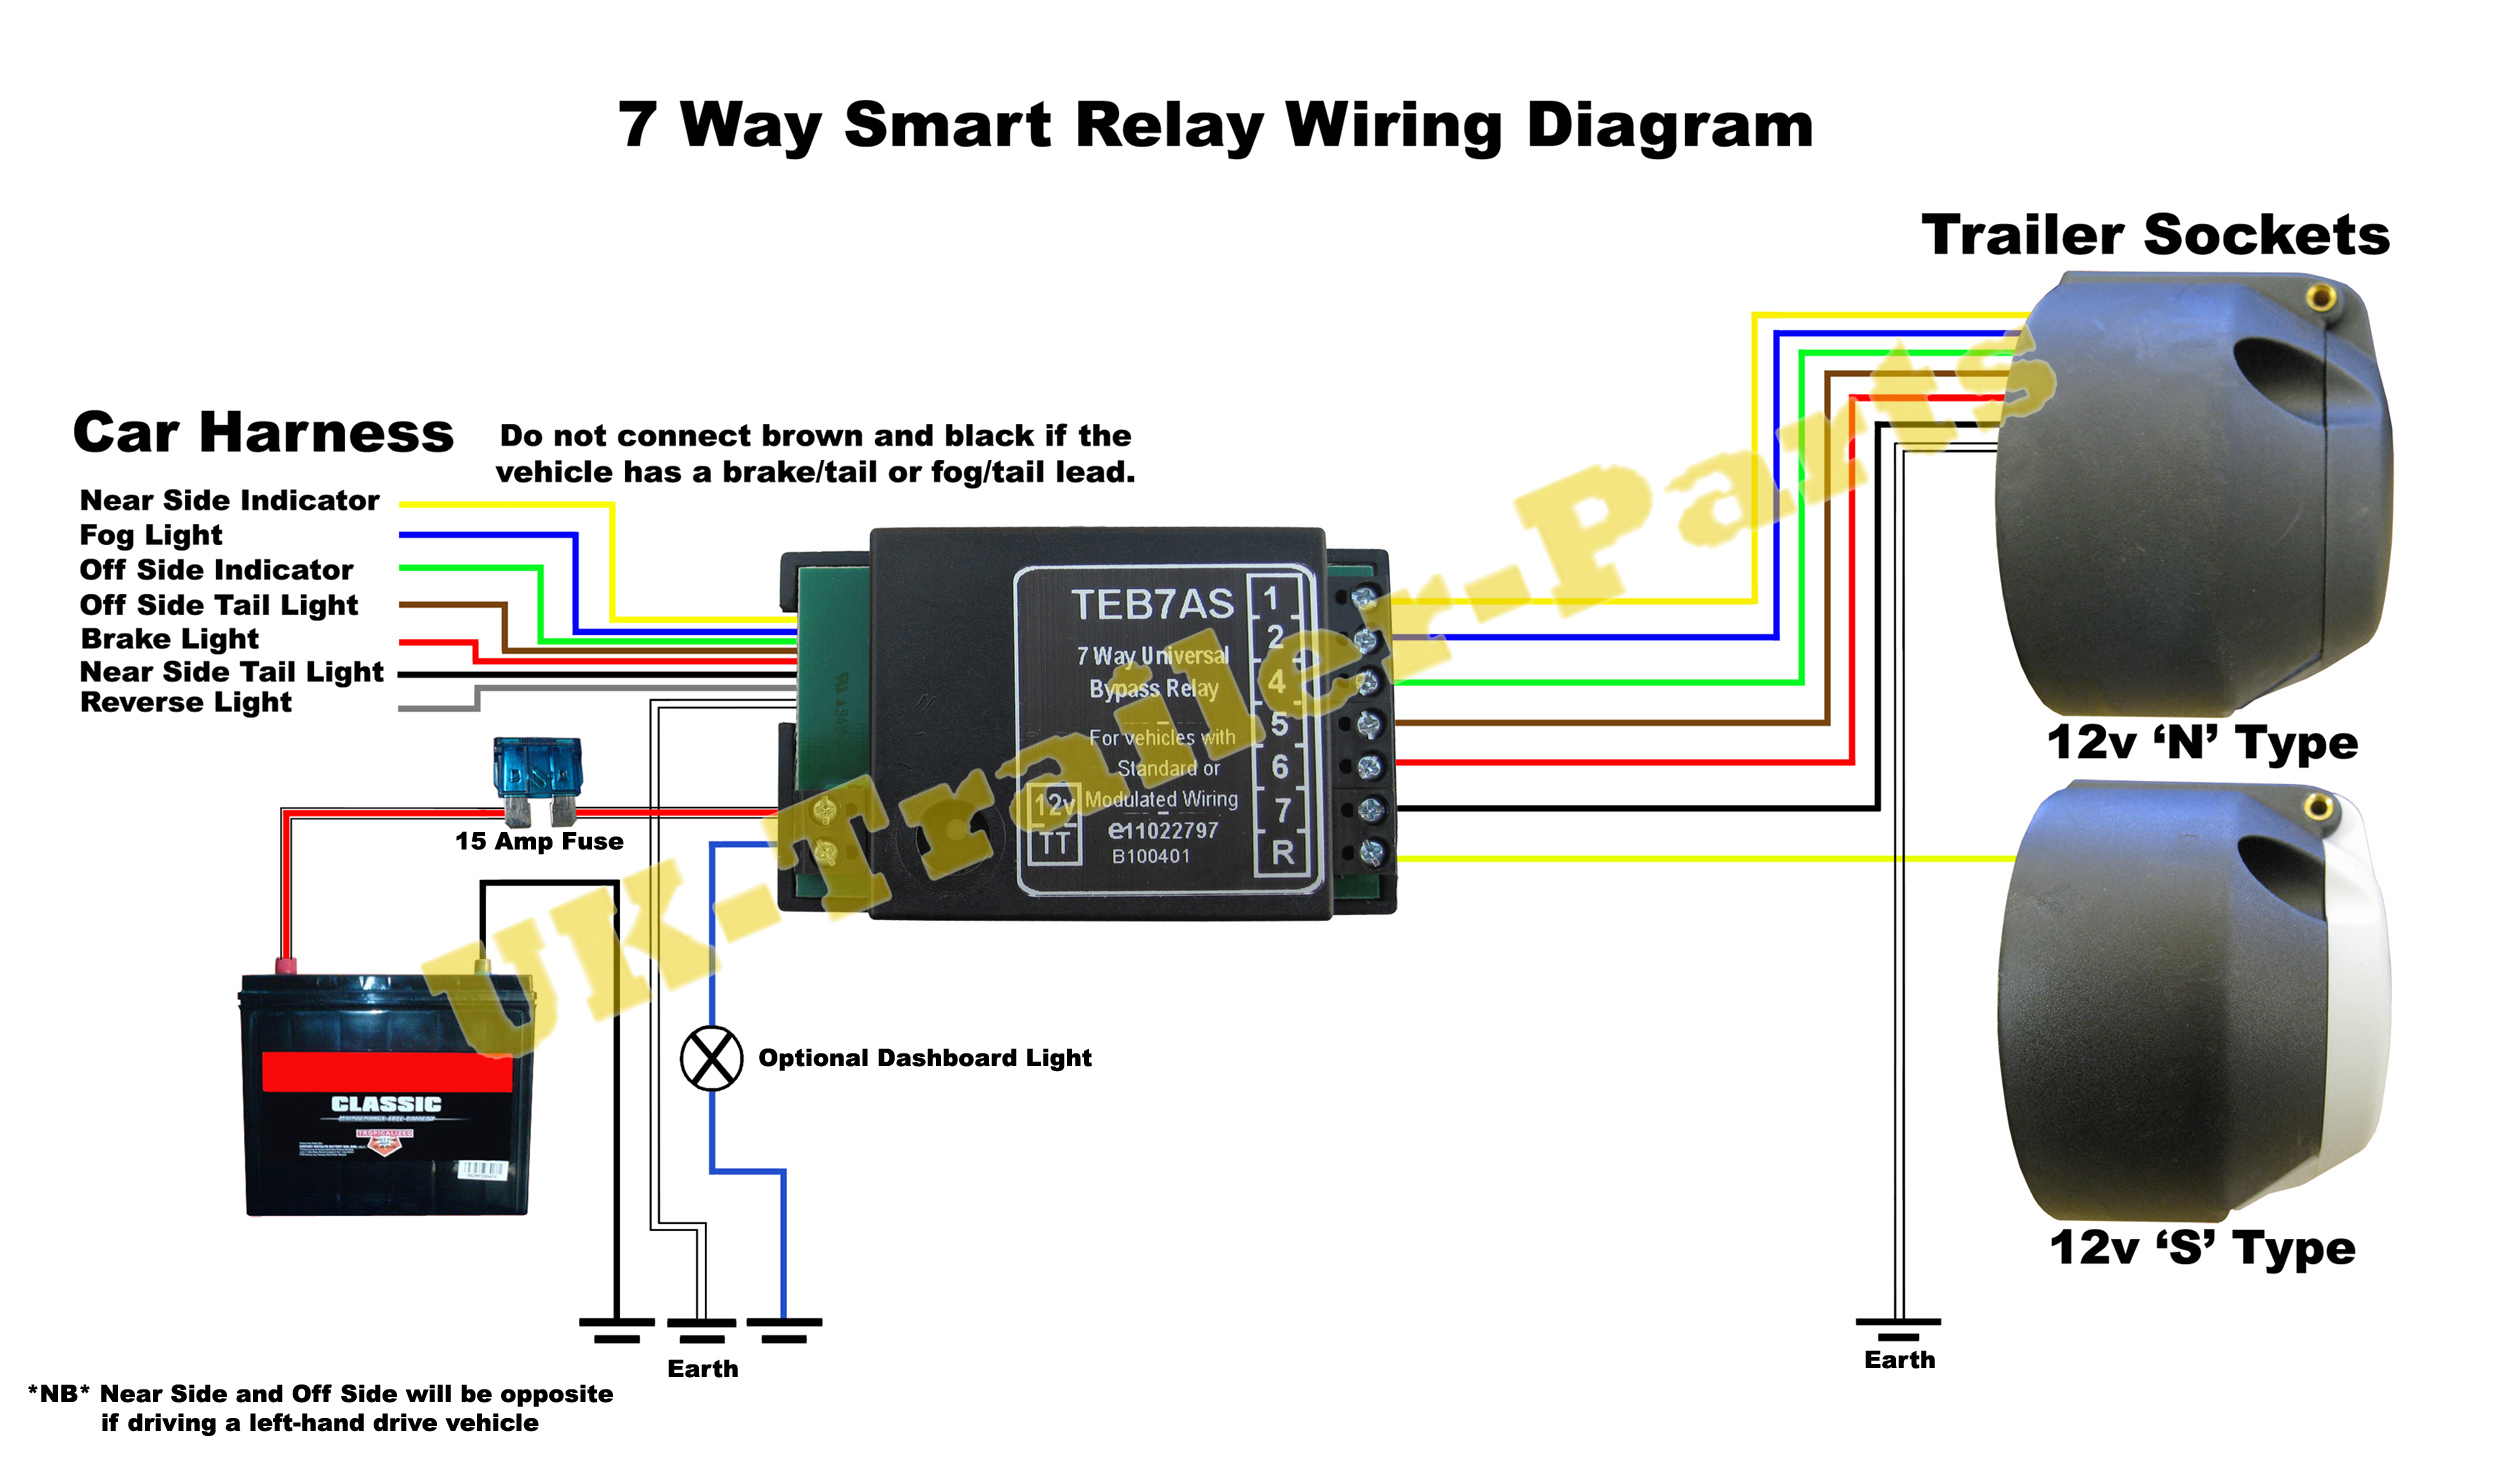 smart relay wiring diagram2 7 way universal bypass relay wiring diagram uk trailer parts vauxhall insignia towbar wiring diagram at gsmportal.co